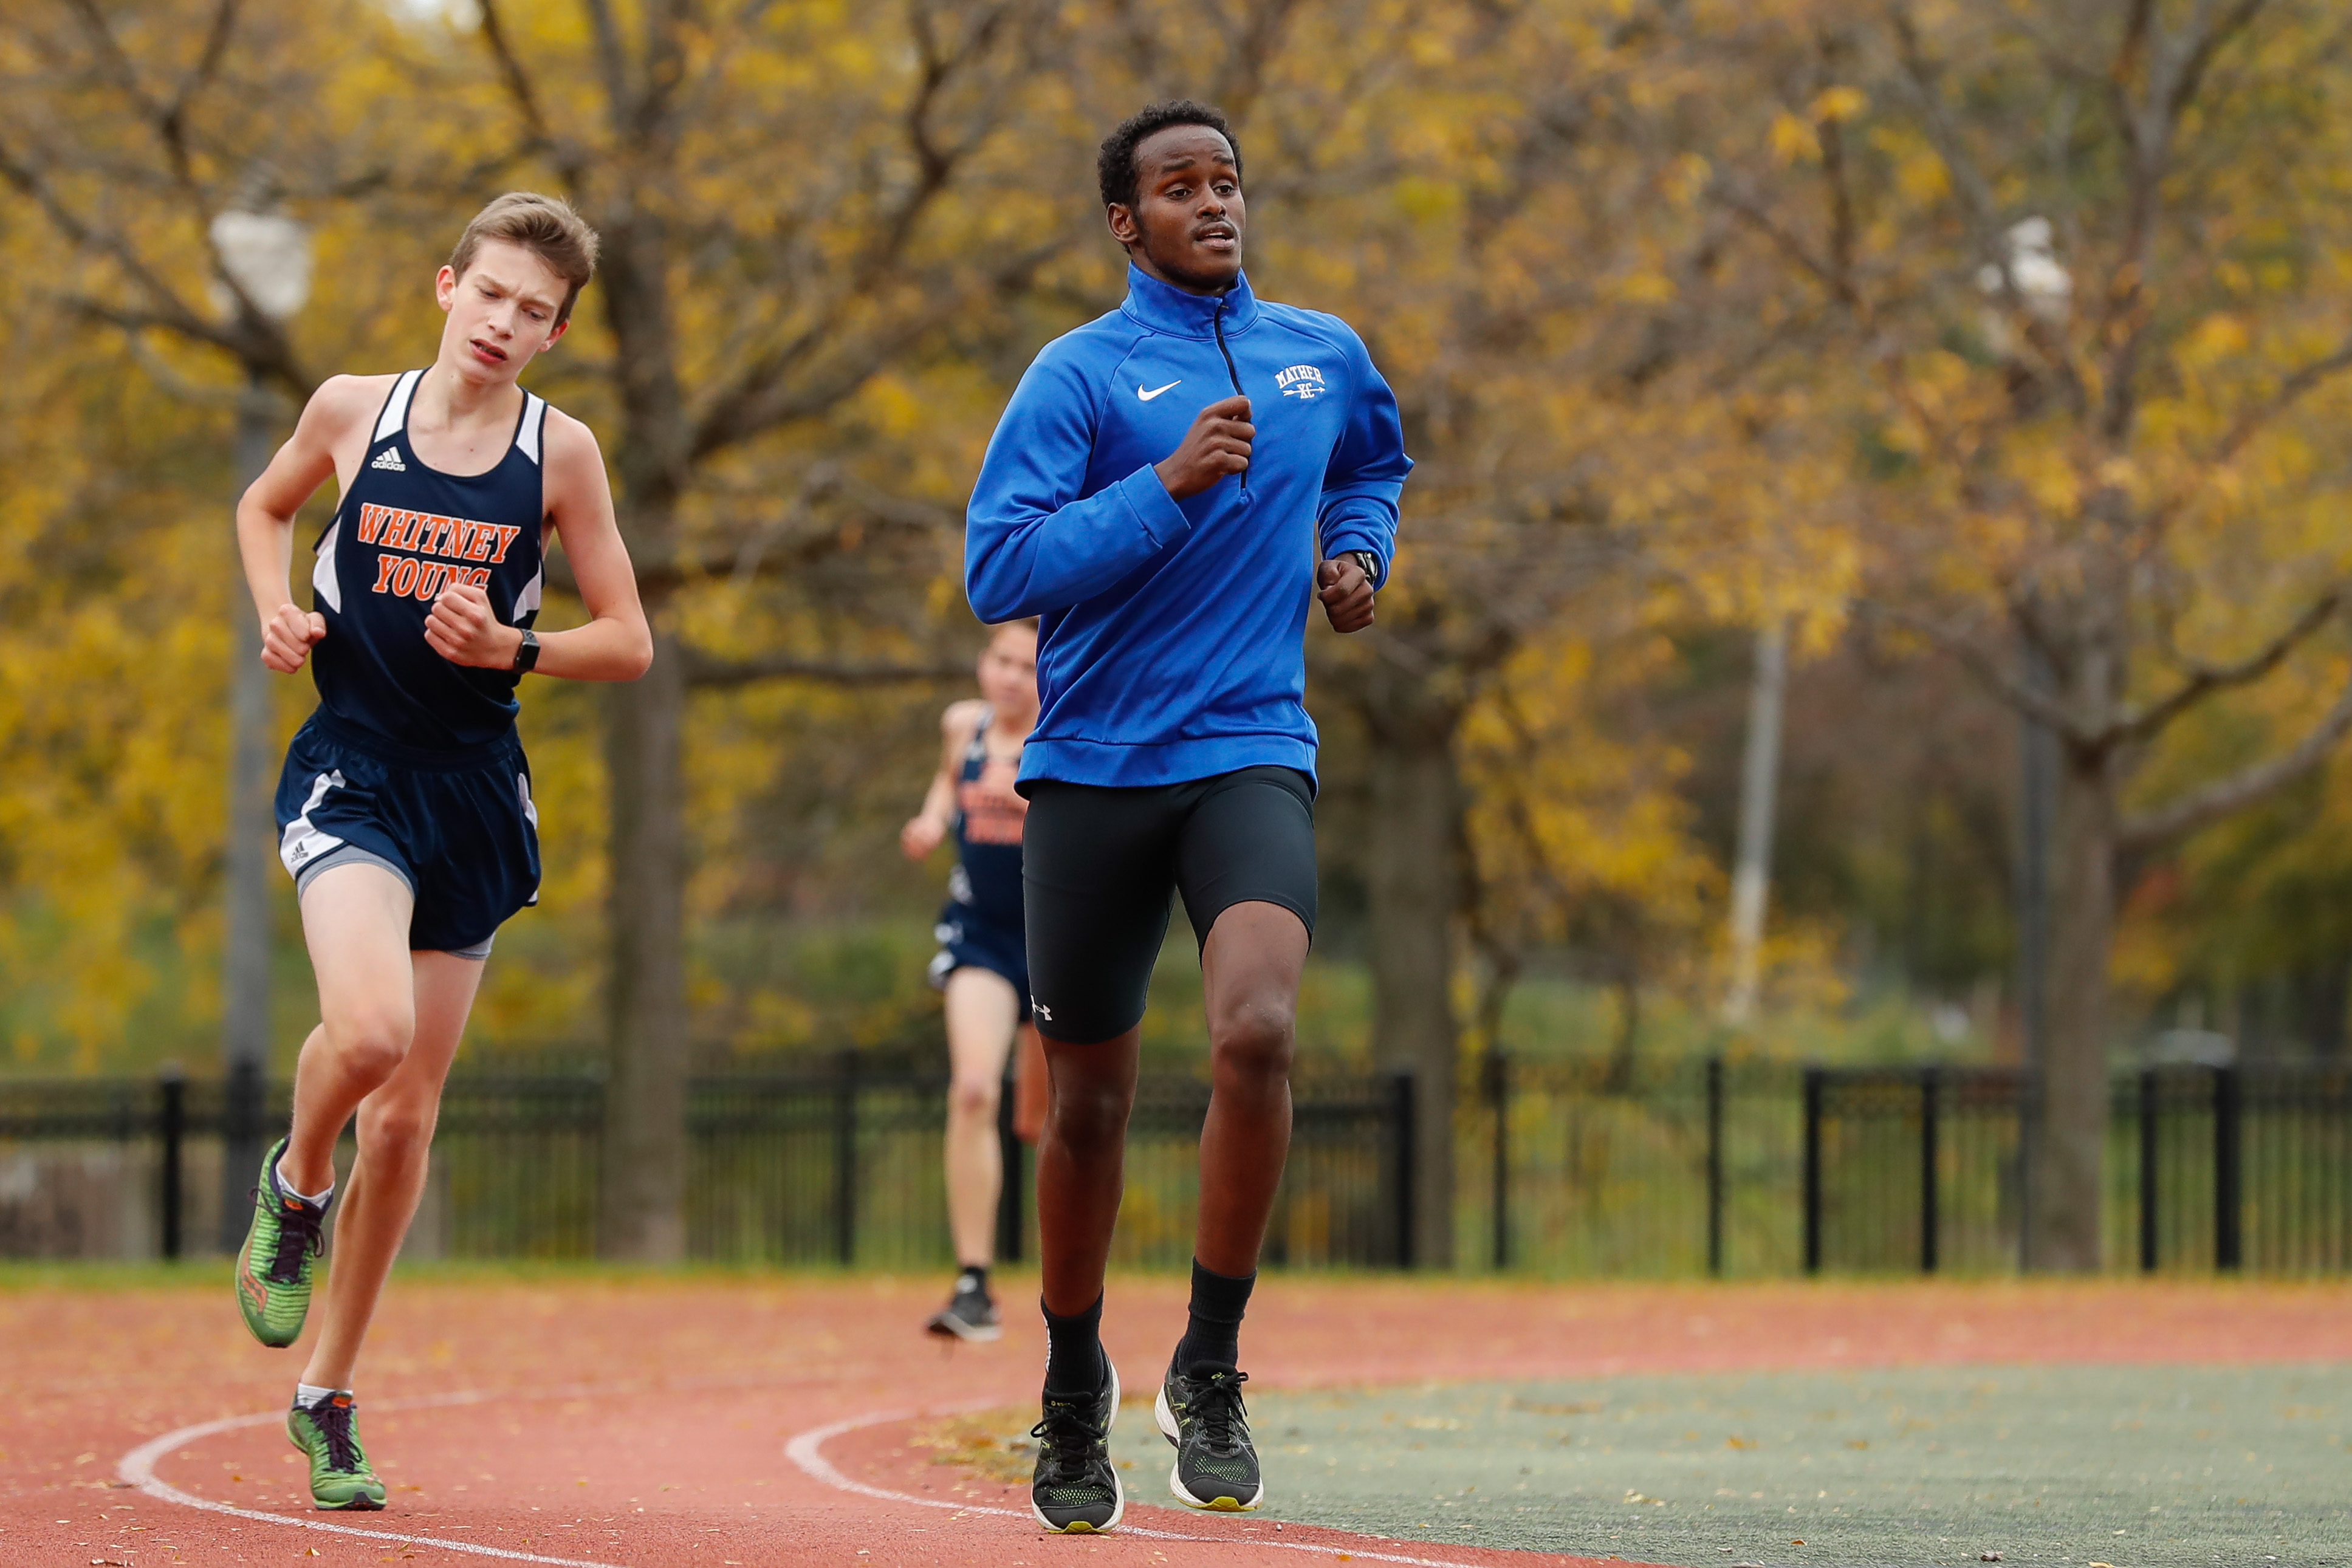 Mather's Anas Hirsi runs in the meet at River Park.